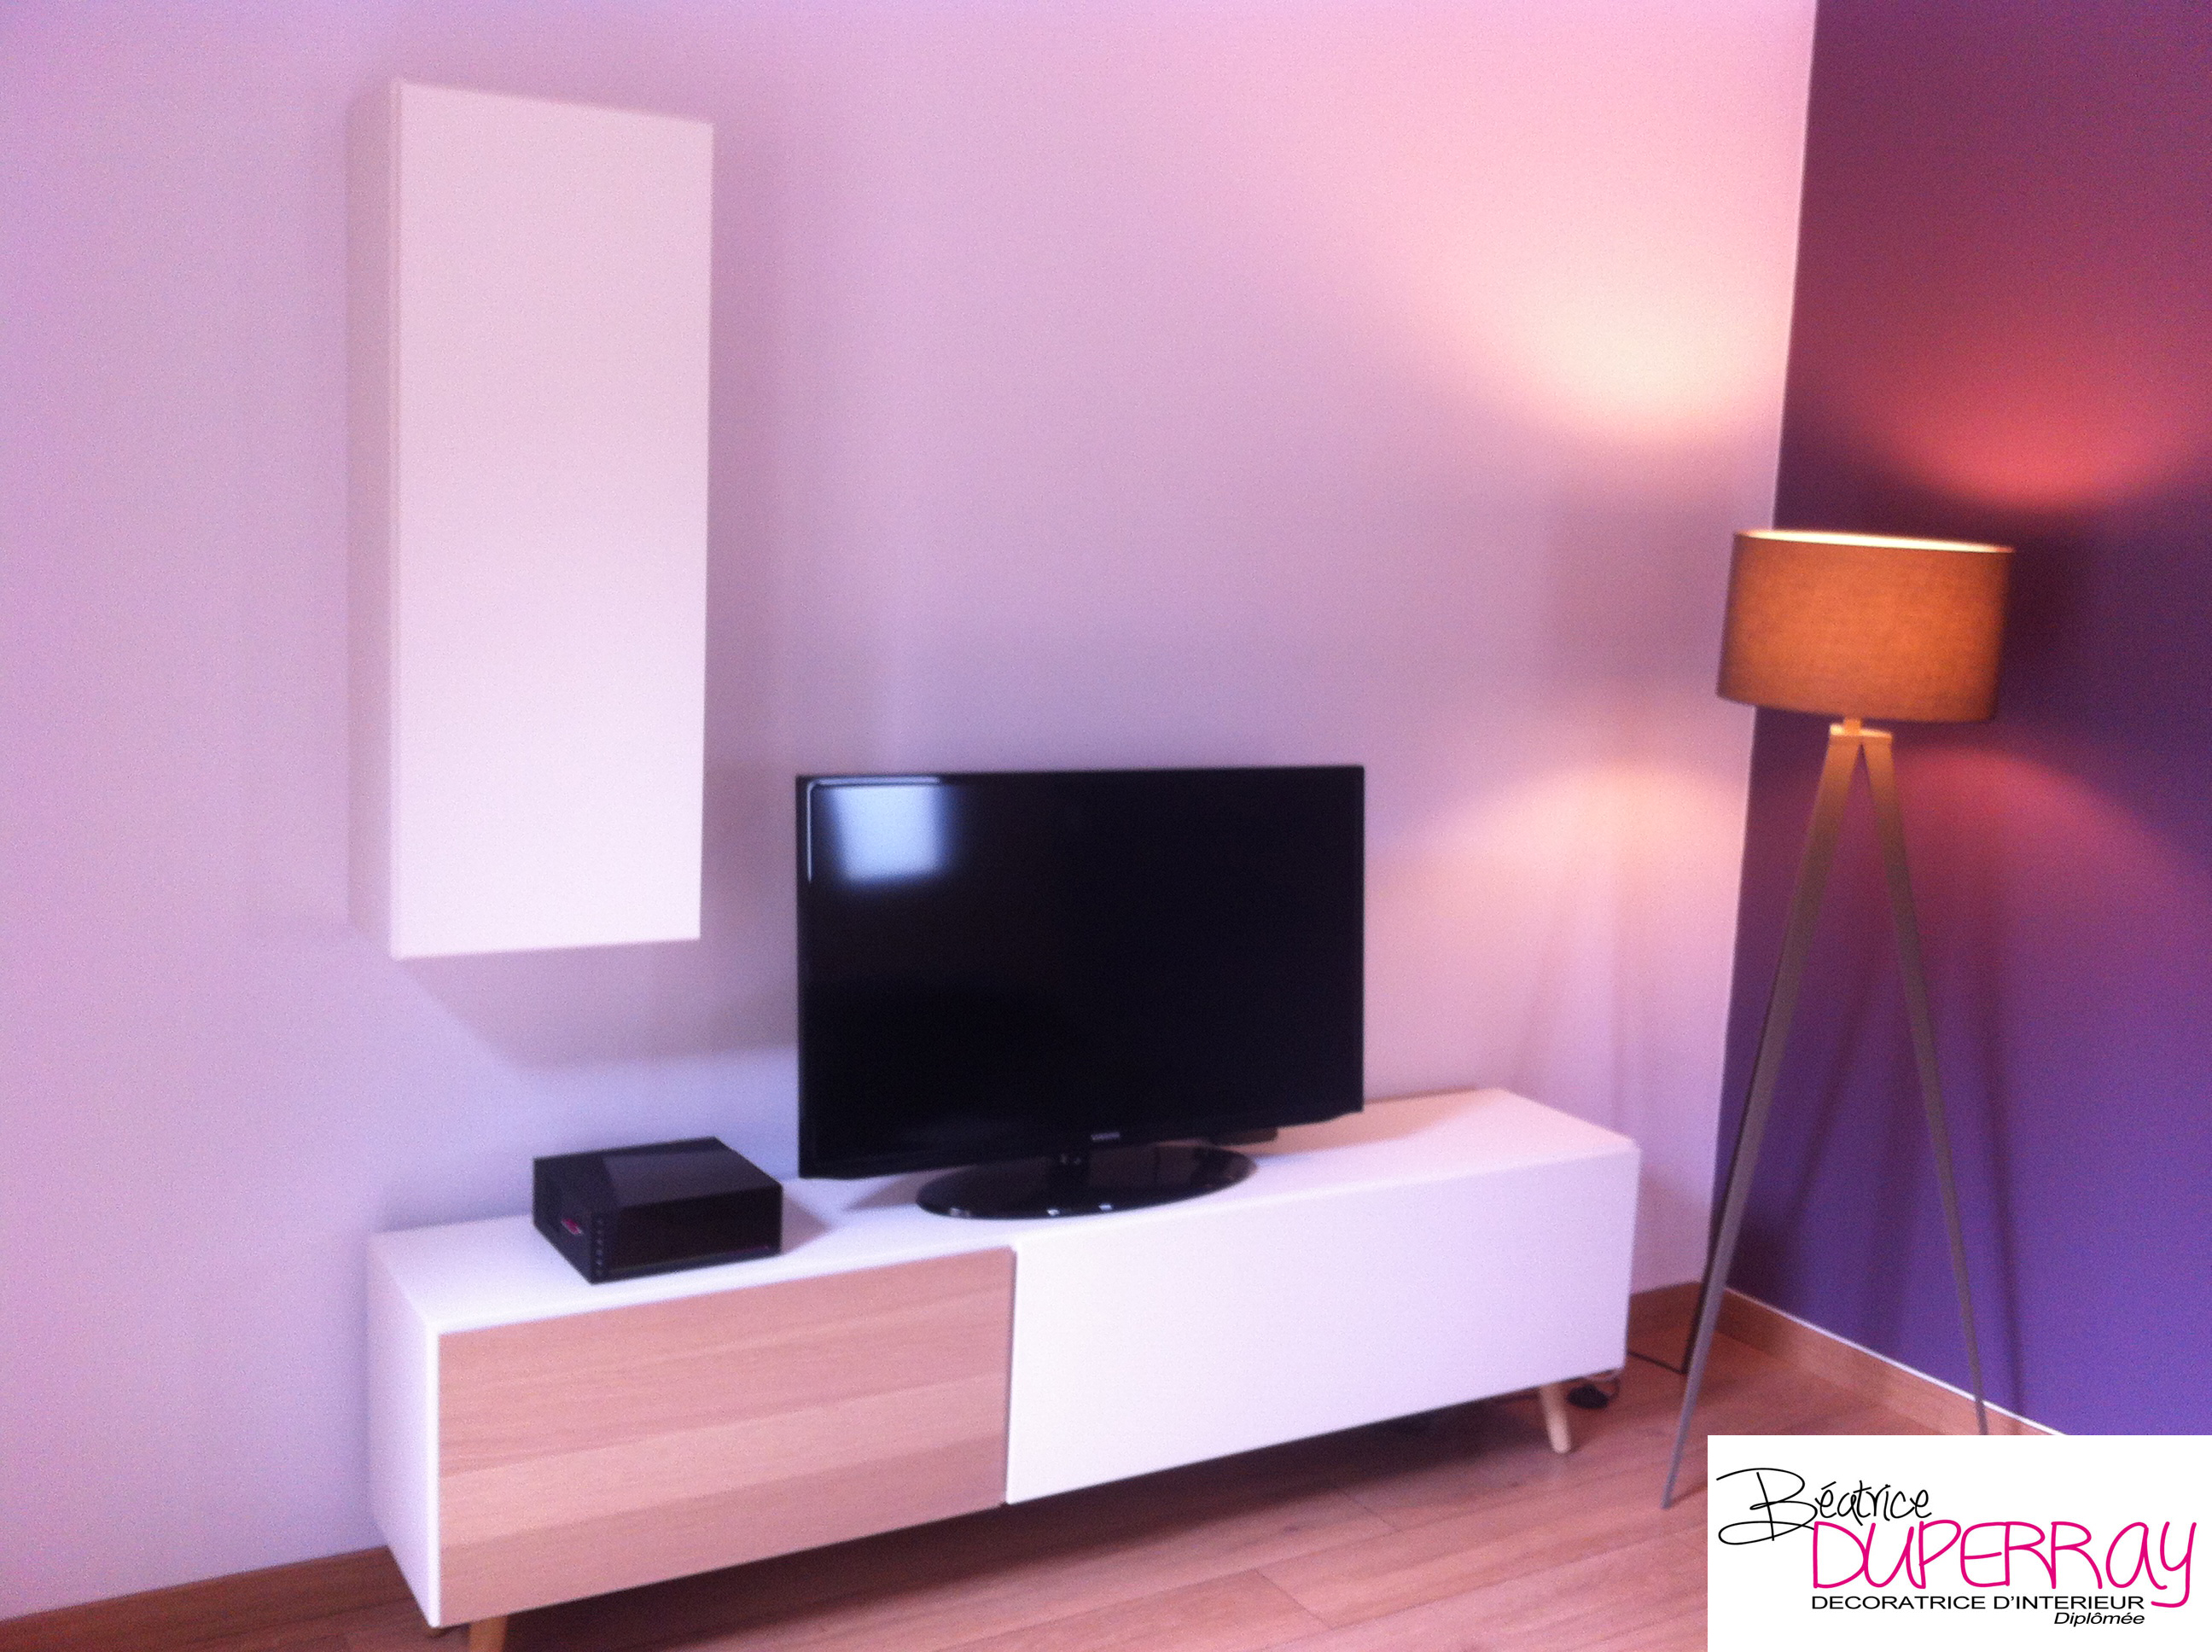 SELECTION MOBILIER